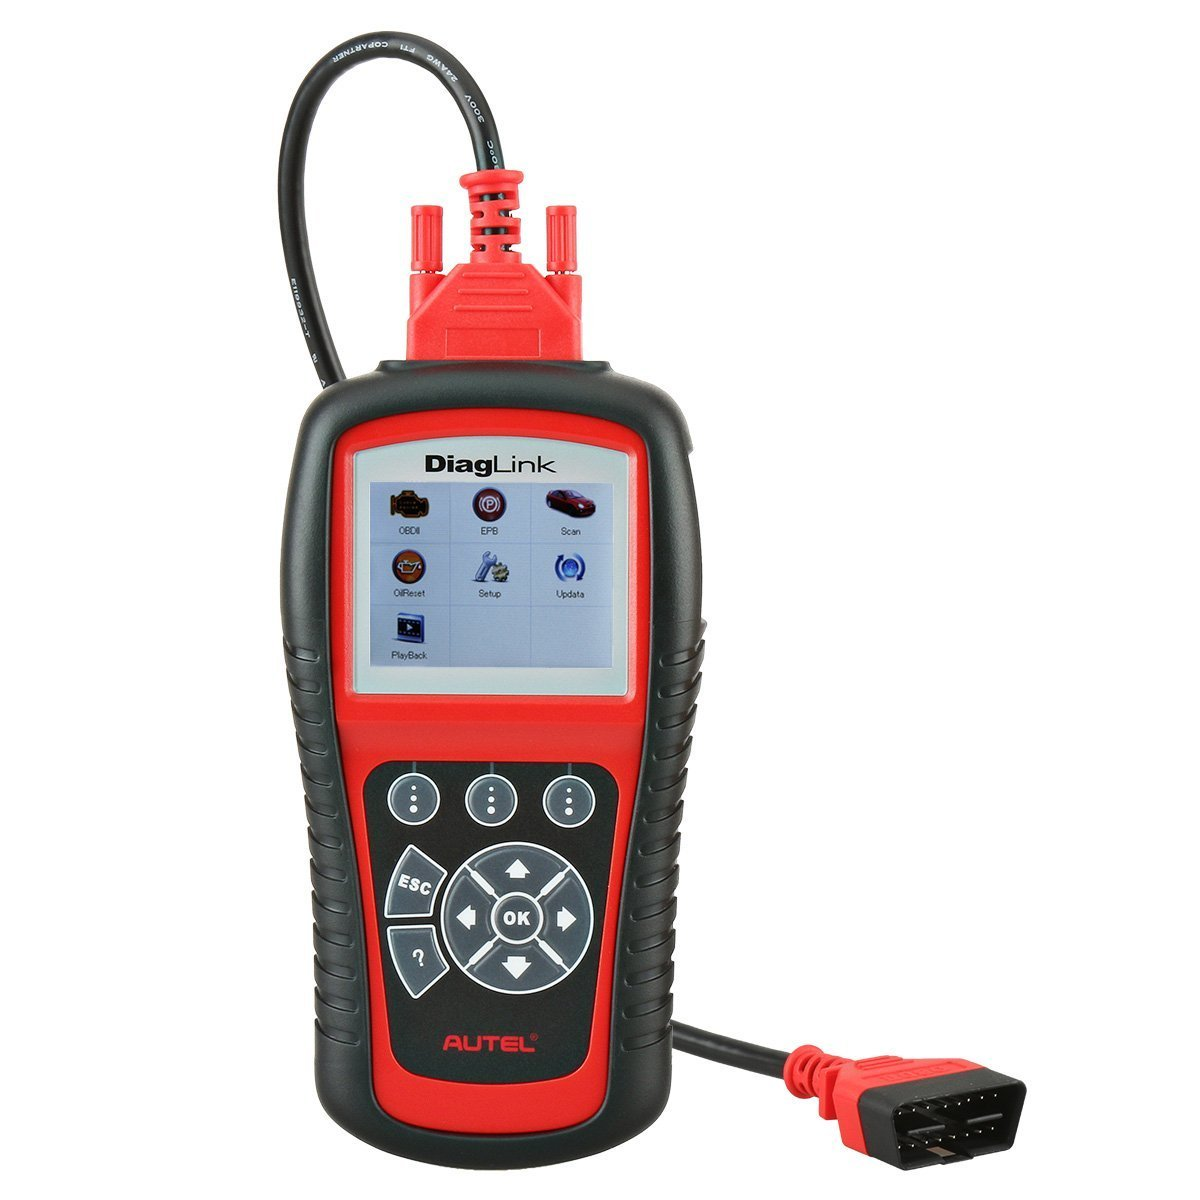 Autel OBD2 Car Code Reader - DiagLink (DIY Version of MD802) Code Scanner with EPB Reset Oil Resets and Full Systems Diagnoses including ABS/SRS/Engine/Transmission for DIY Amateurs and Workshops